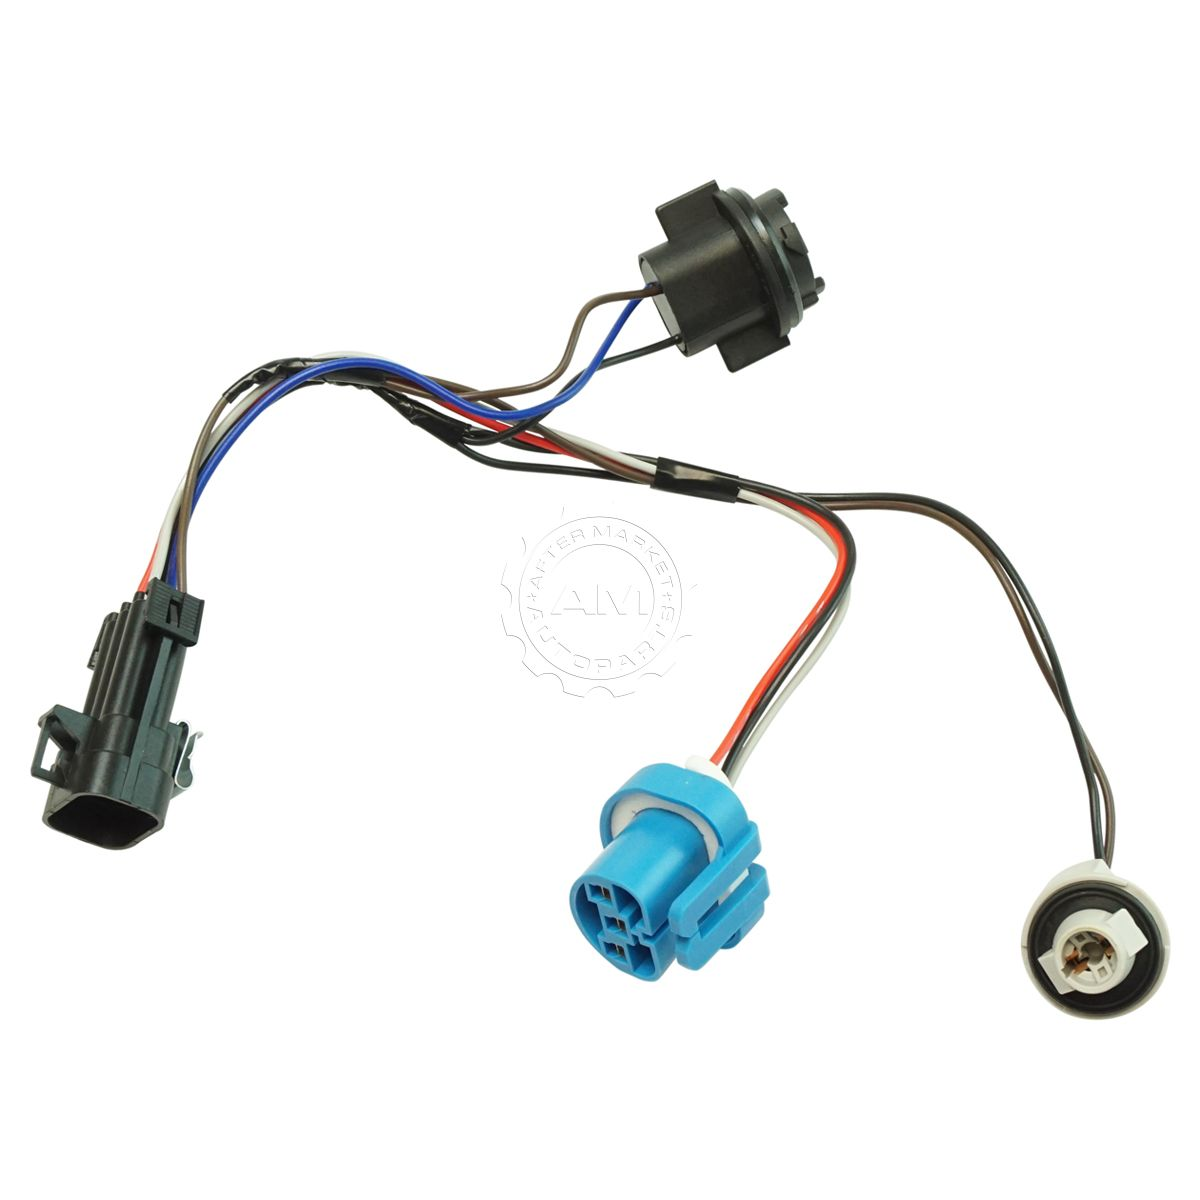 hight resolution of dorman headlight wiring harness or side for chevy cobalt pontiac g5 h7 wiring harness dorman headlight